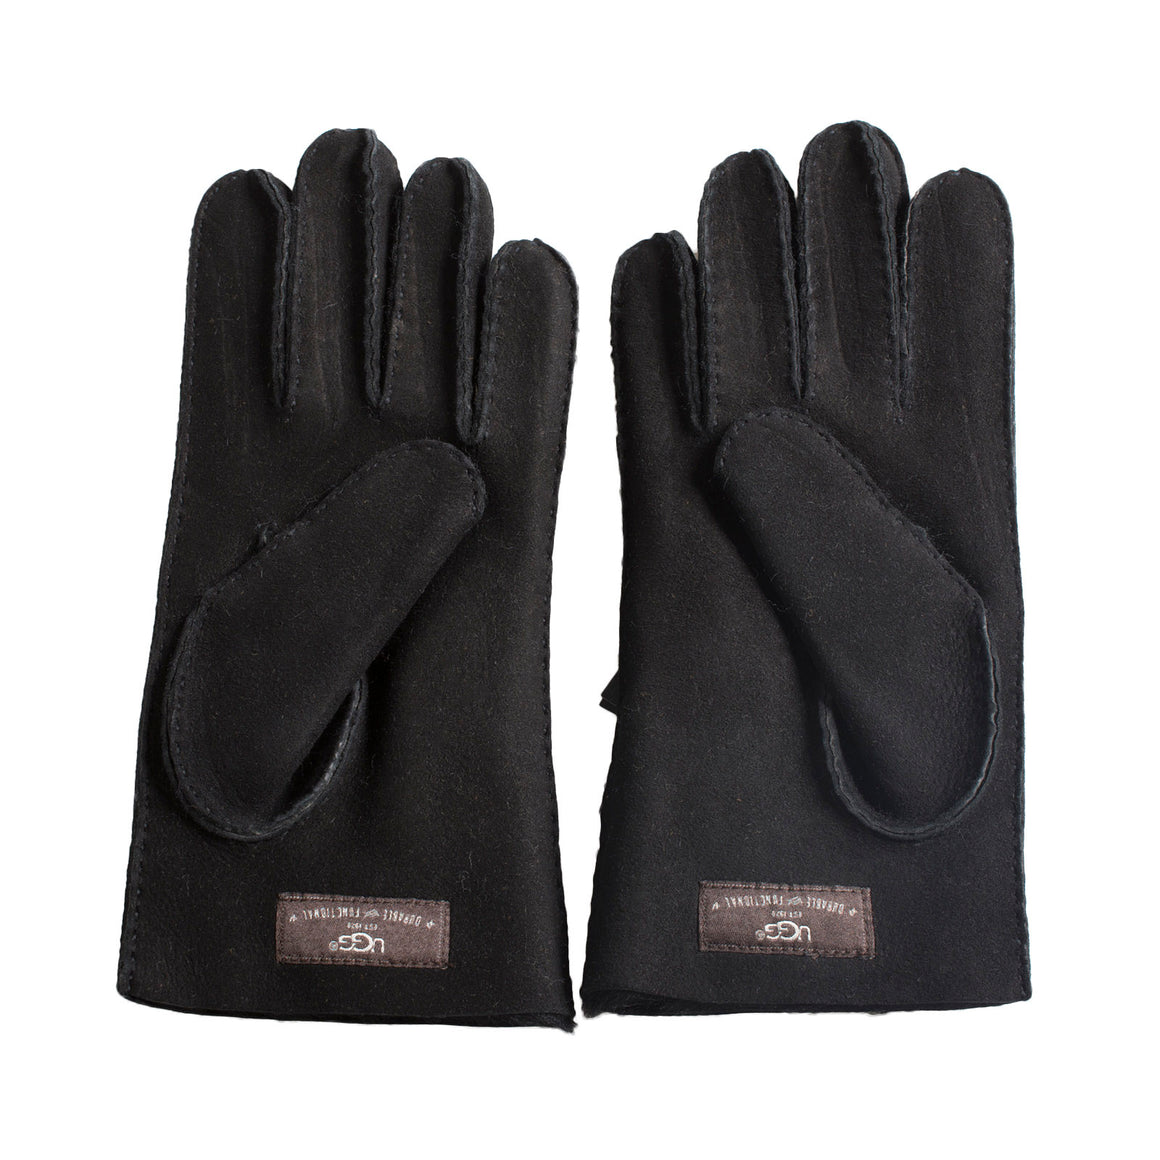 UGG Shearling Without Points Black Gloves - Men's